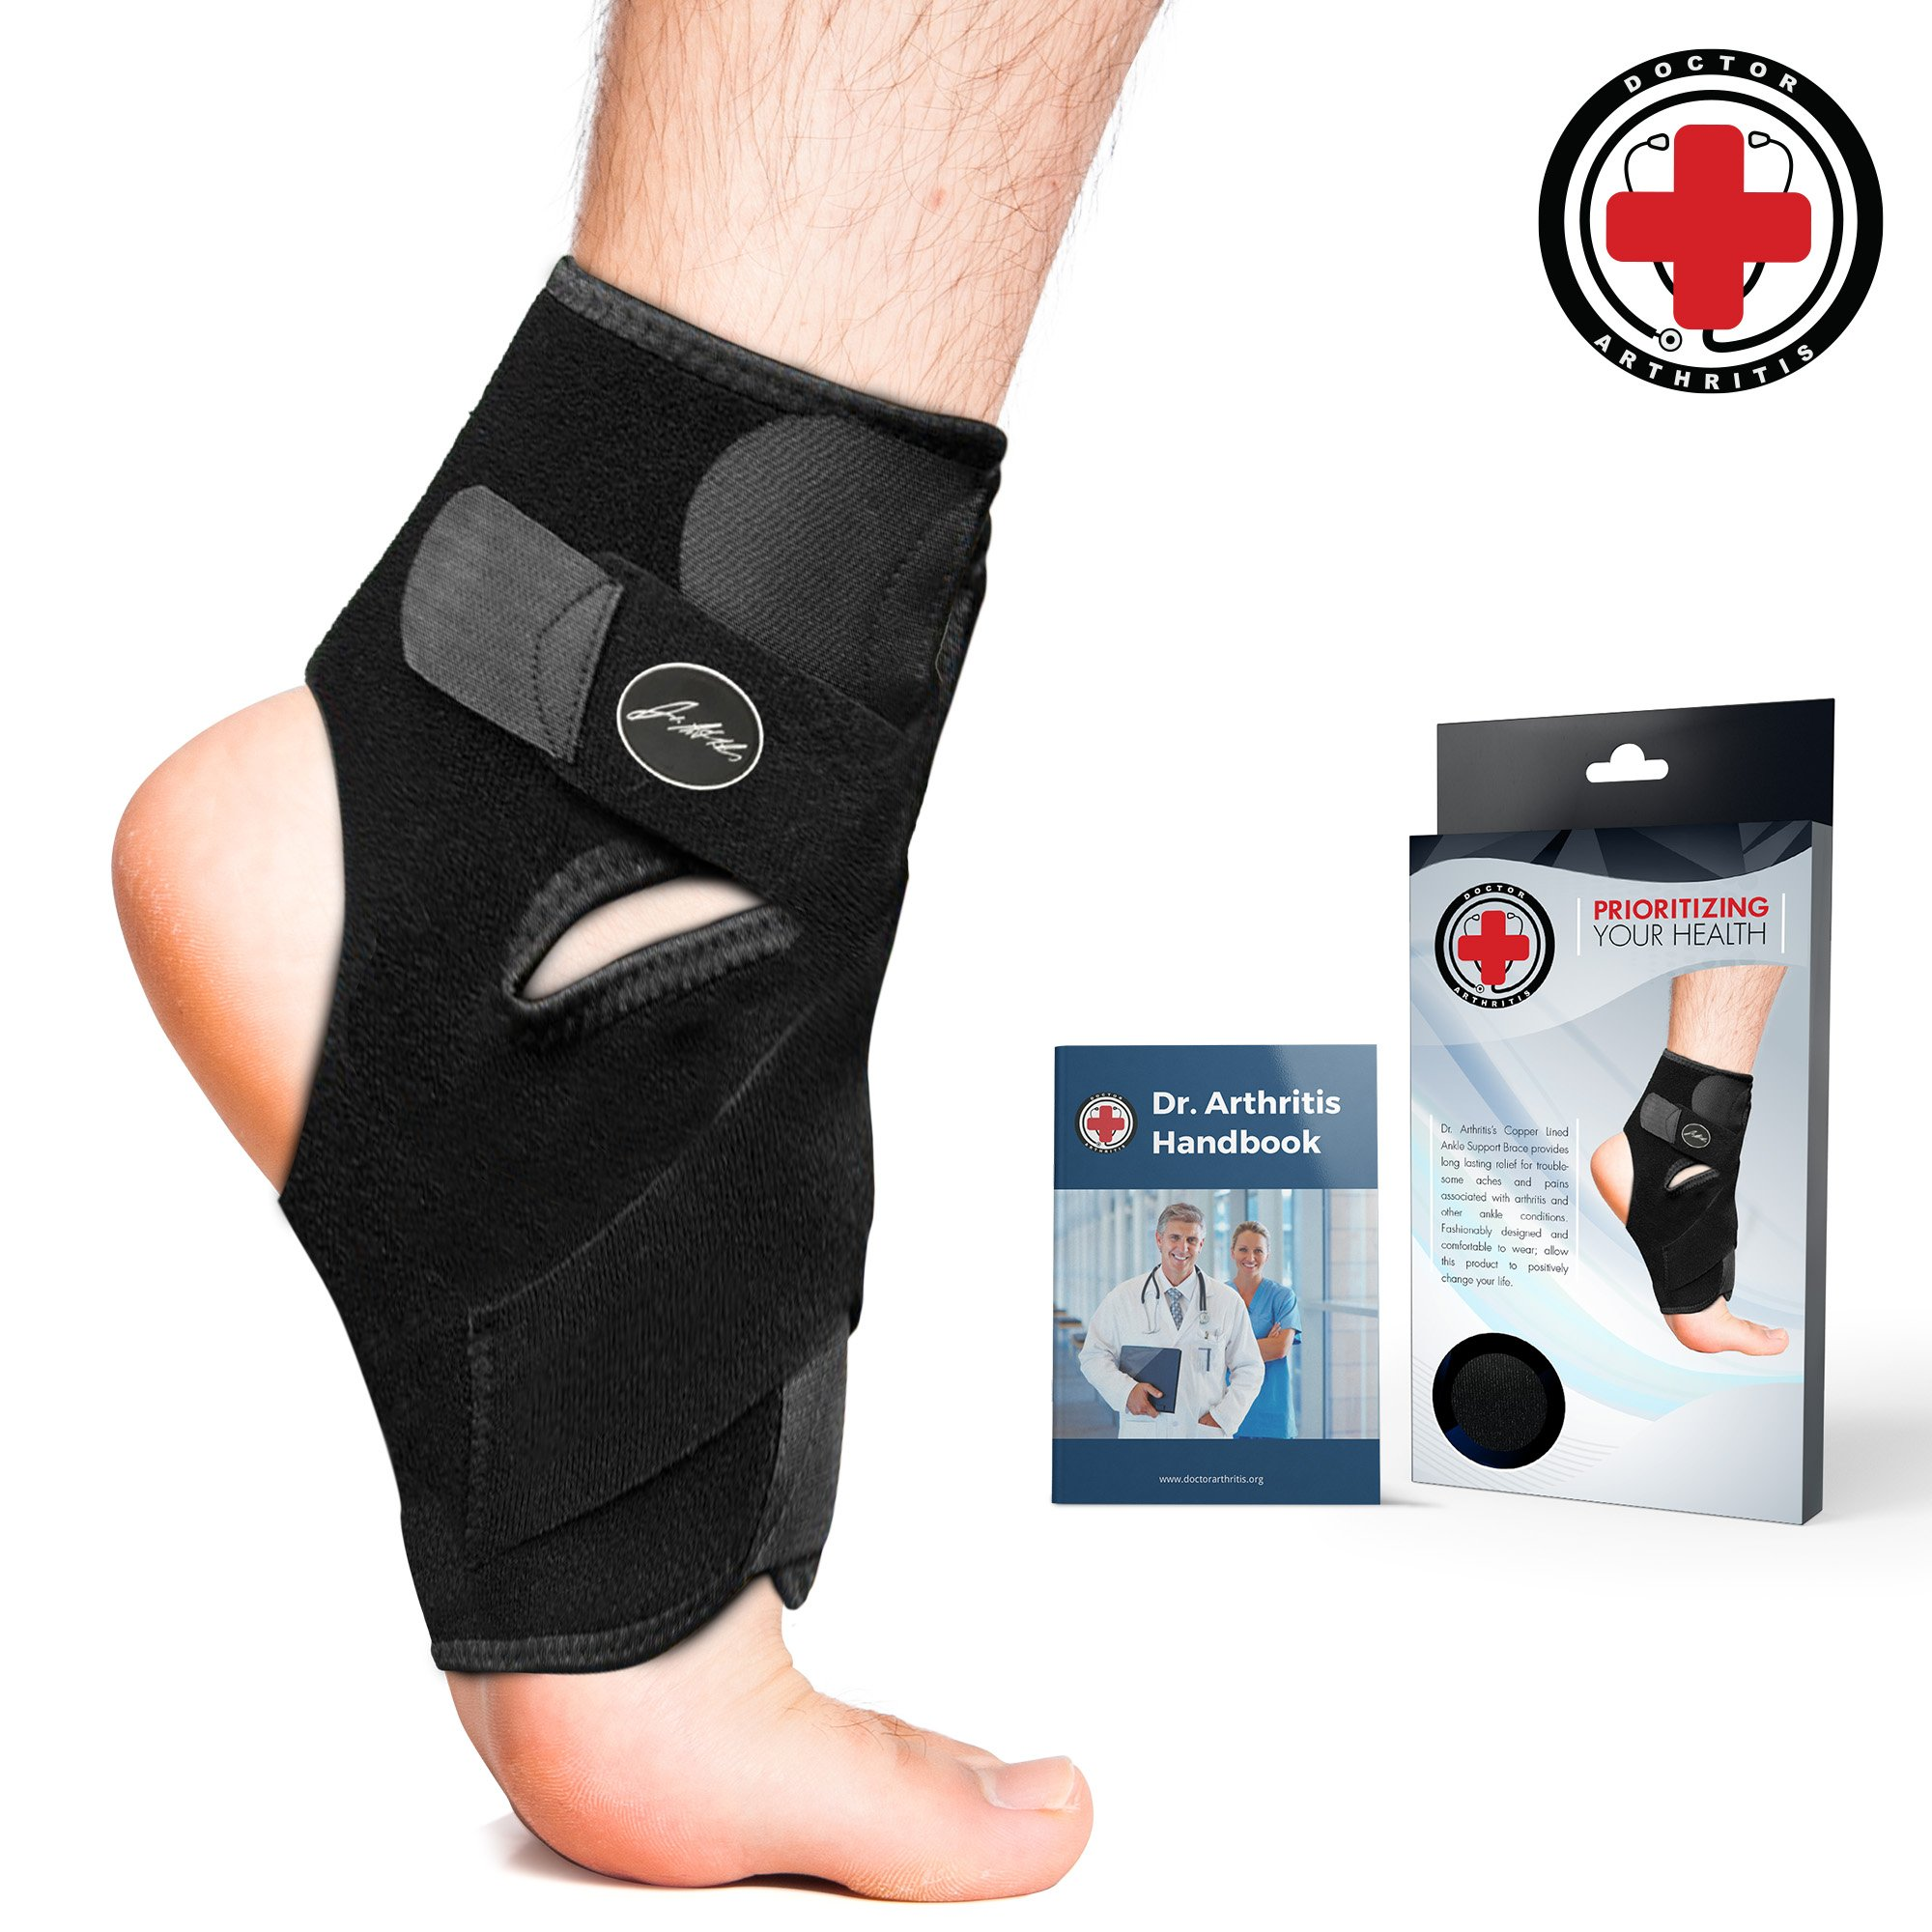 Doctor Developed Ankle Brace & Ankle Support [Single] and Doctor Written Handbook —Guaranteed Relief & Support for Ankle Injuries and Other Ankle Conditions